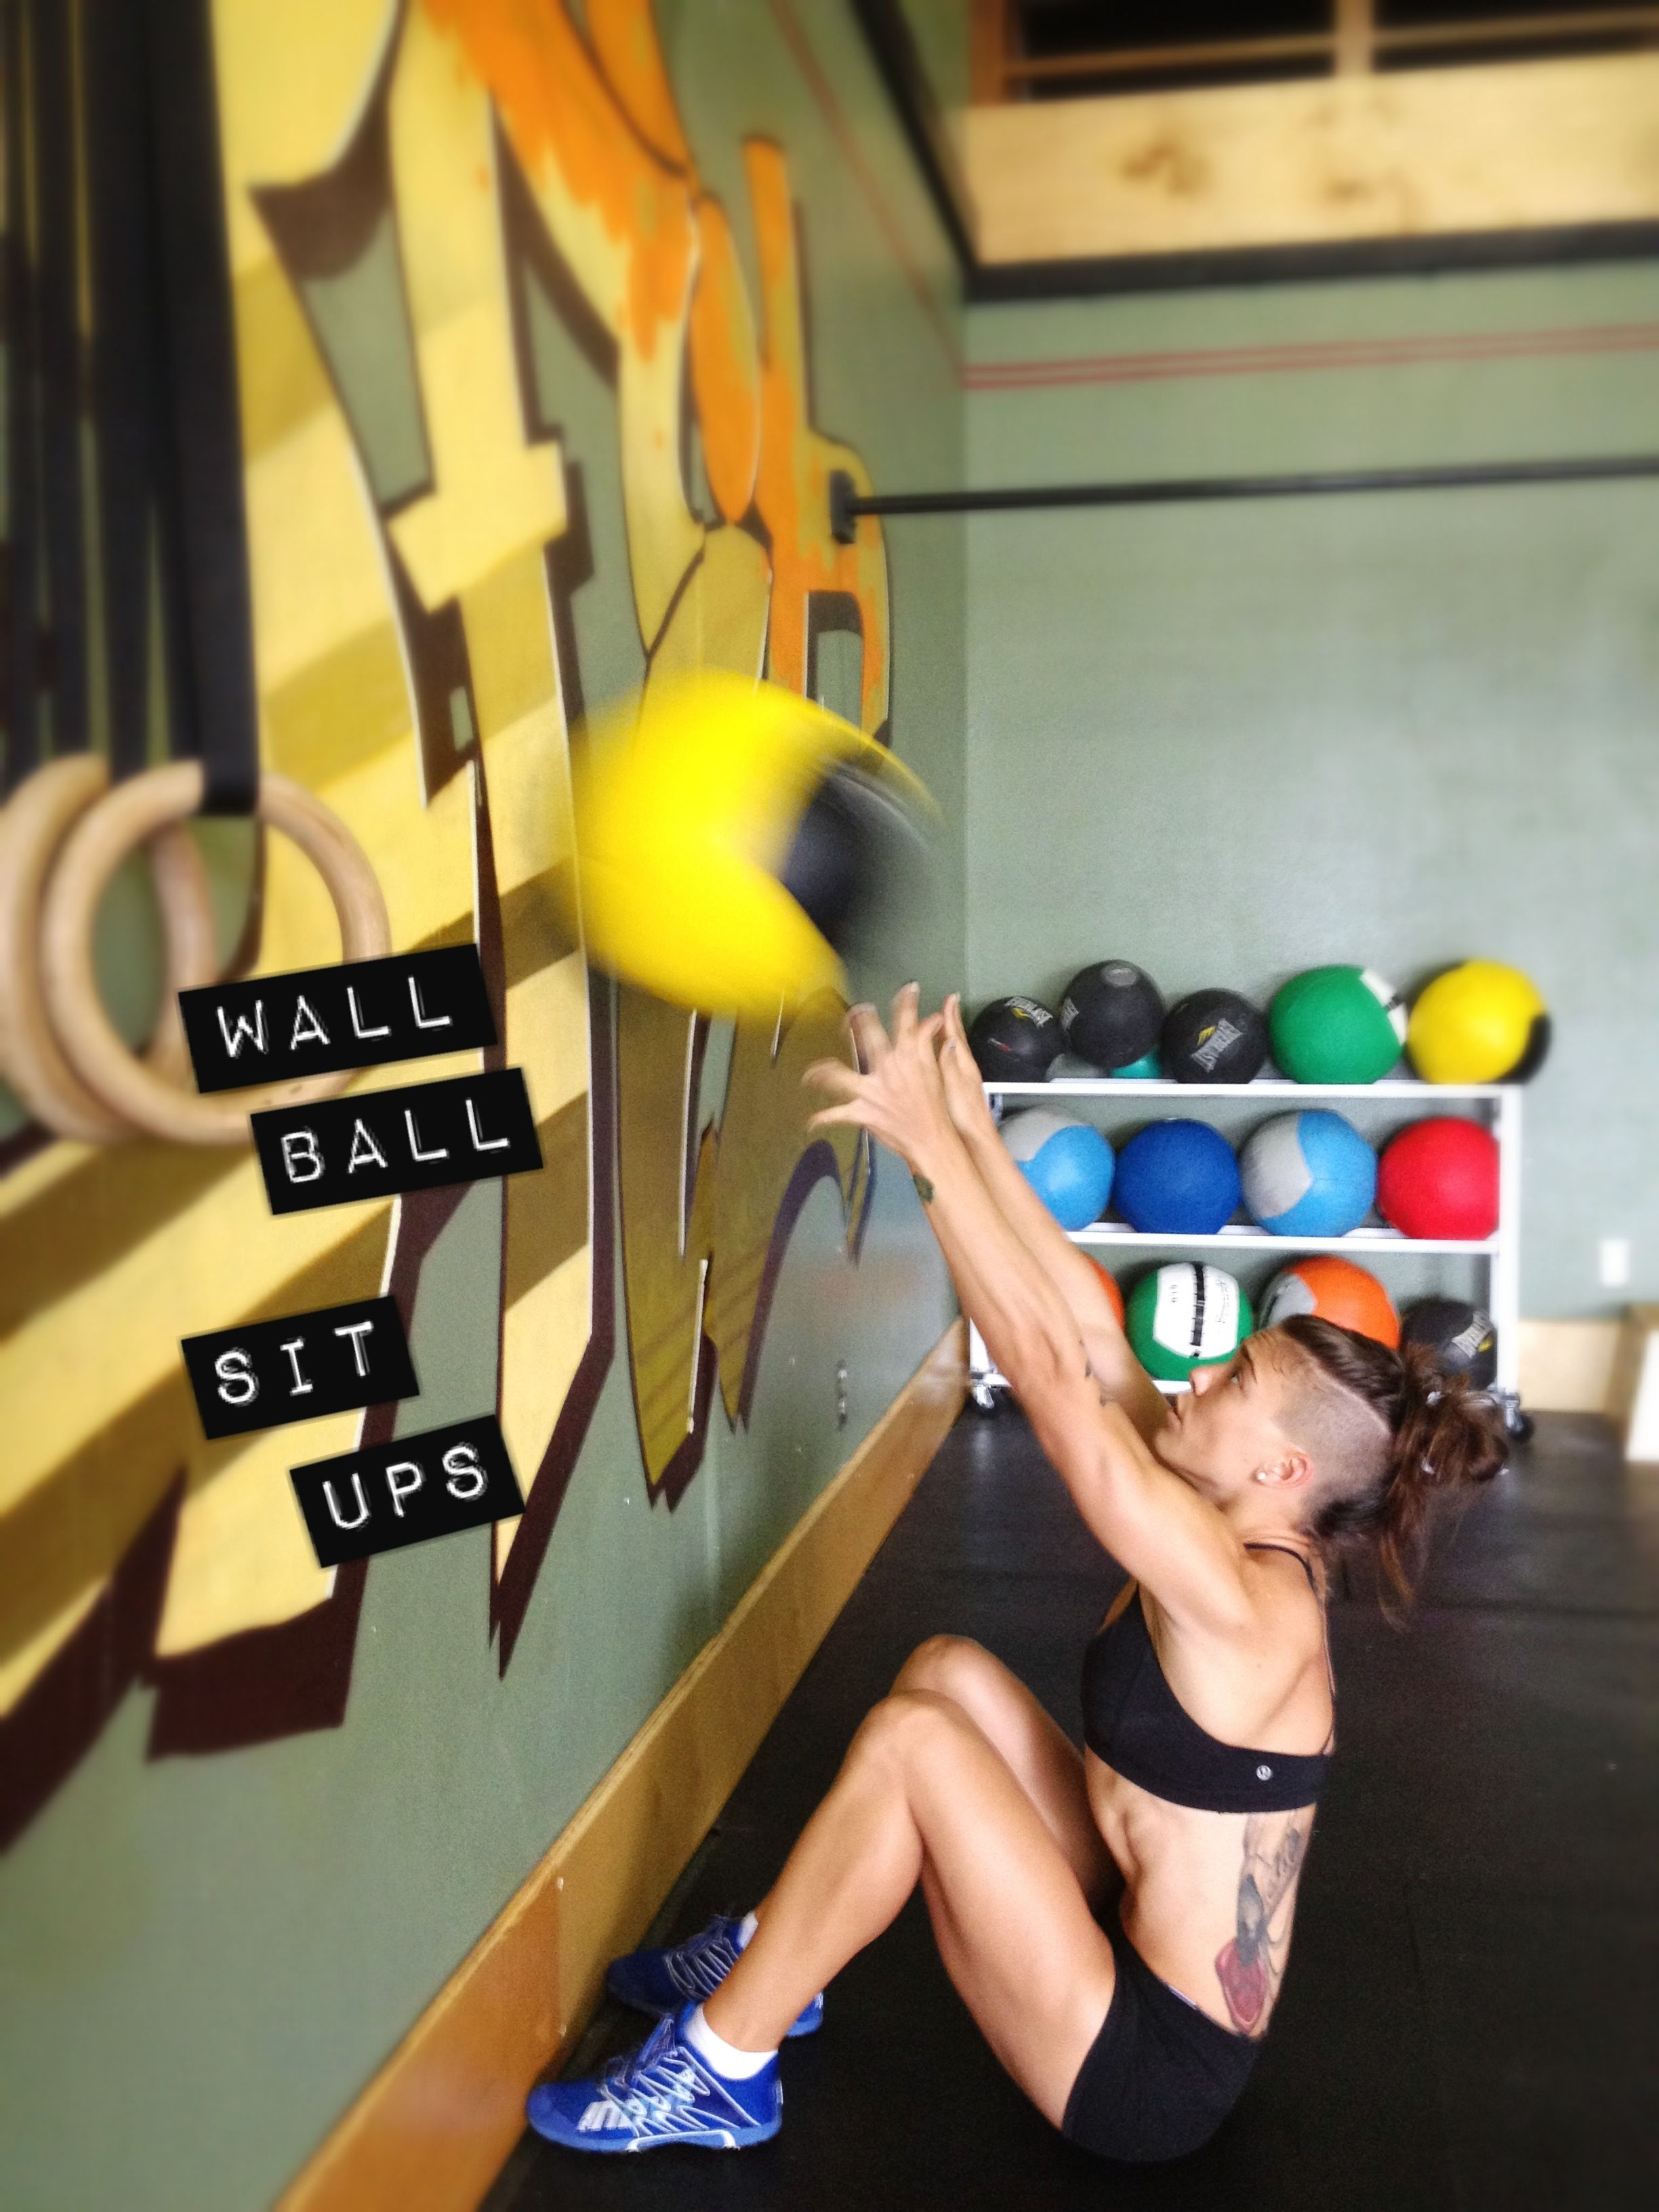 Hanging knee raises with medicine ball - Wall Ball Sit Ups With Your Feet Next To A Wall Lay In A